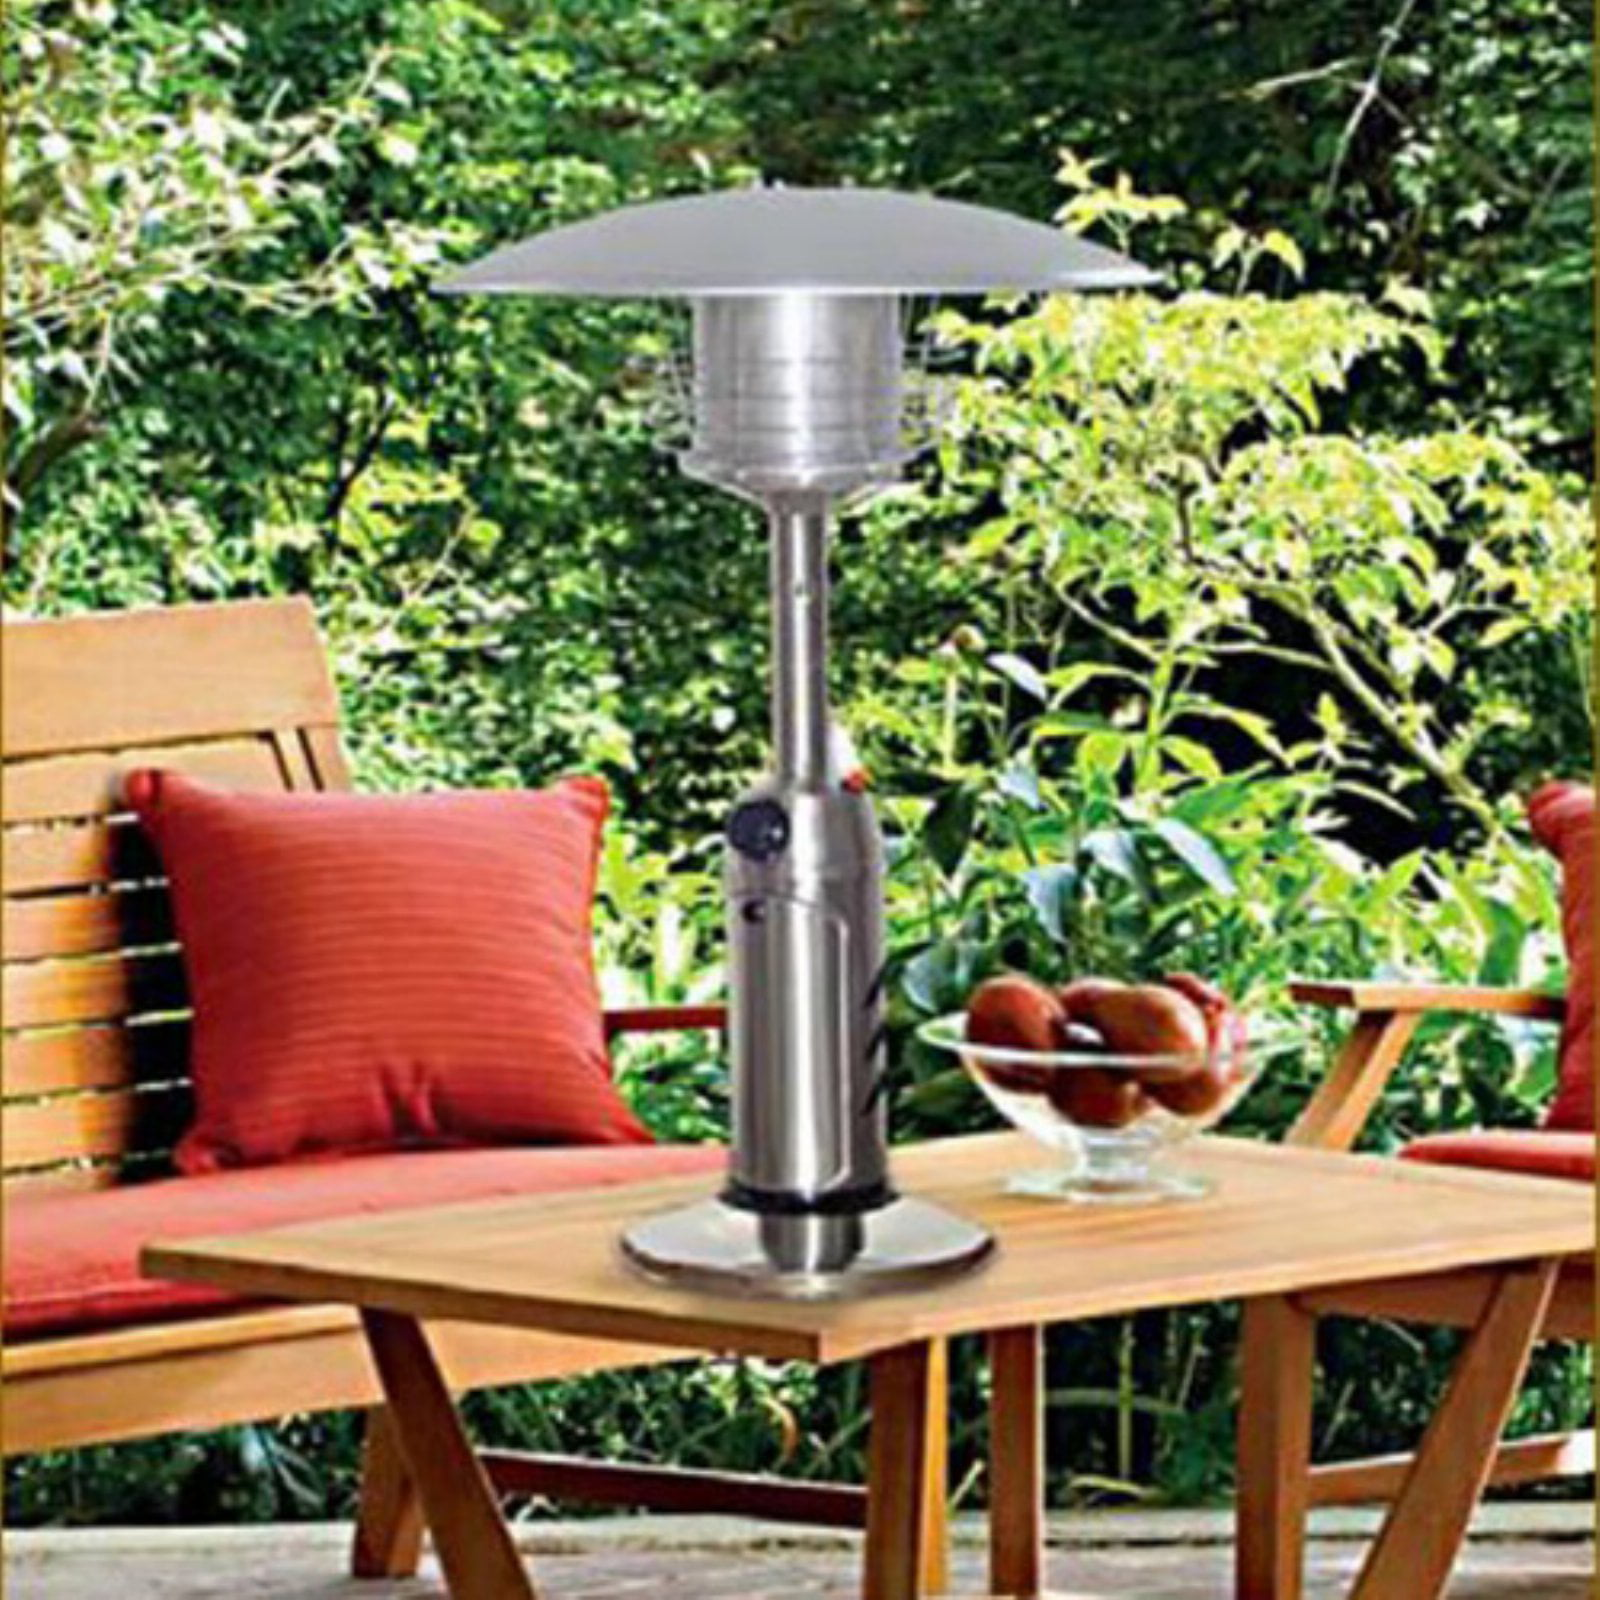 AZ Patio Heater Portable Stainless Steel Tabletop Heater by Patio Heaters